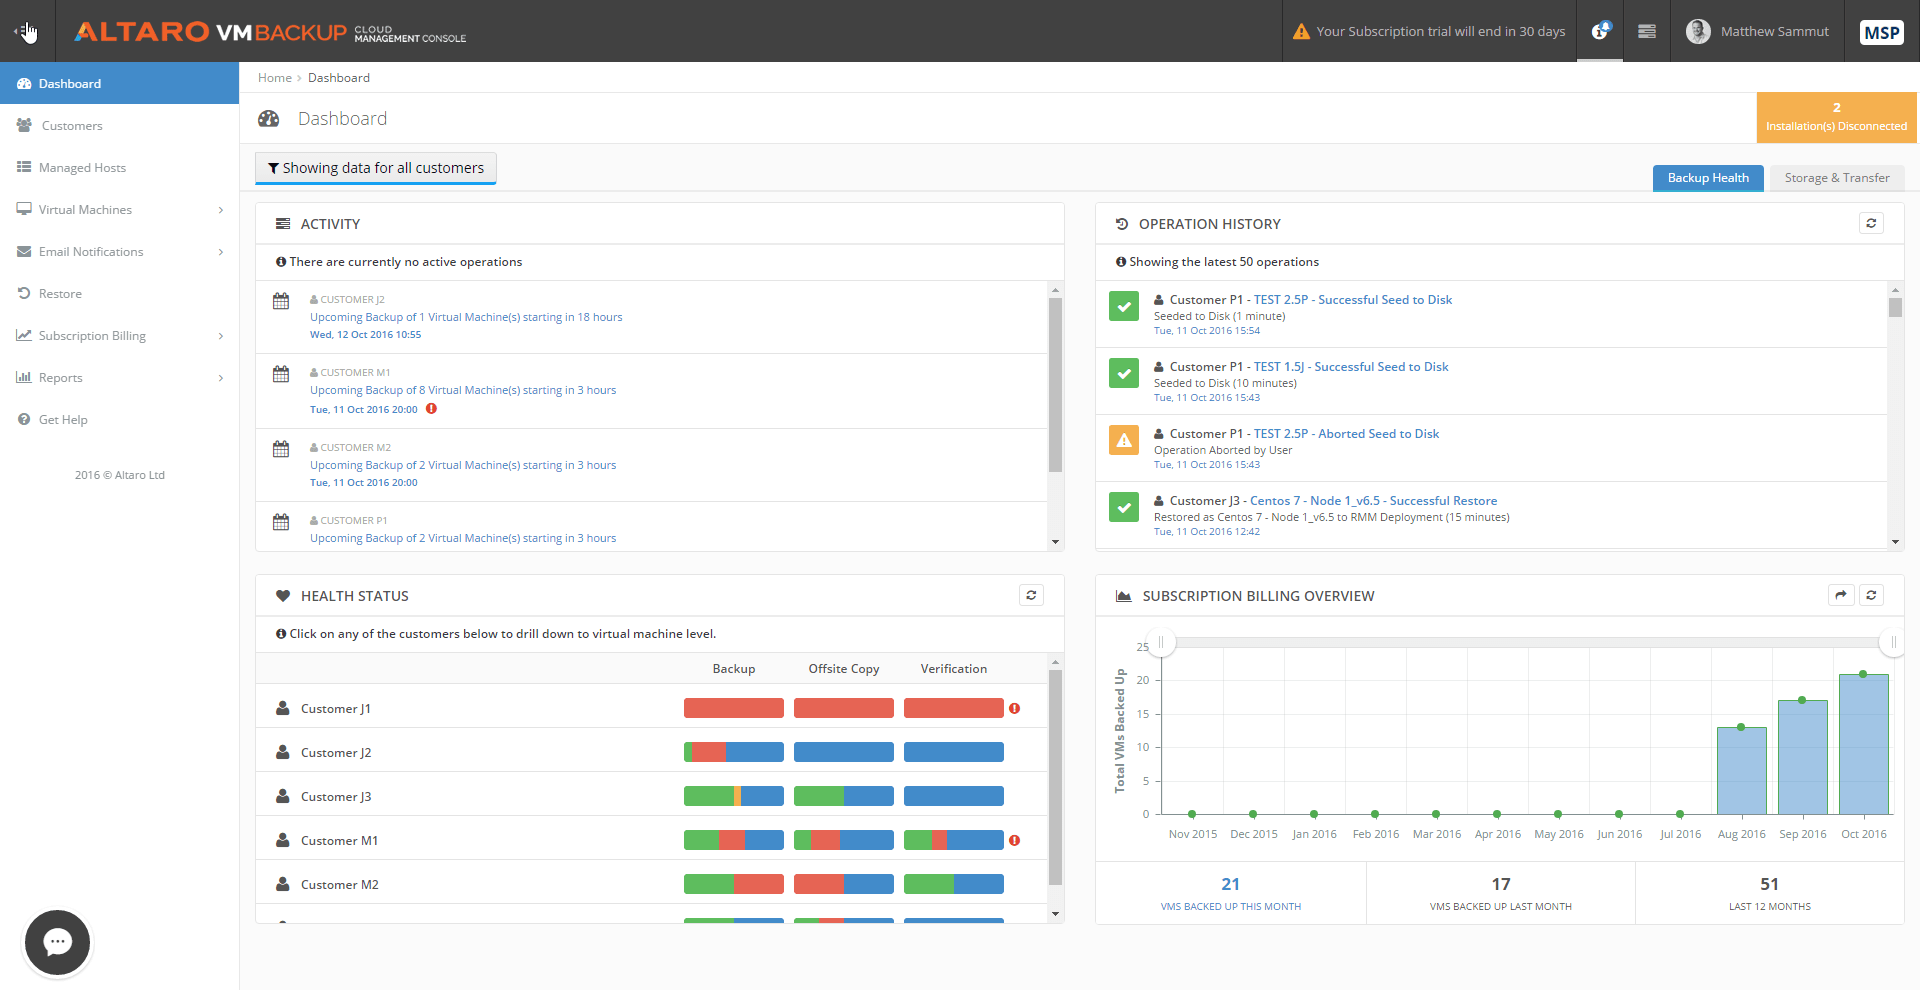 altaro vmbackup cloud management console dashboard big-min